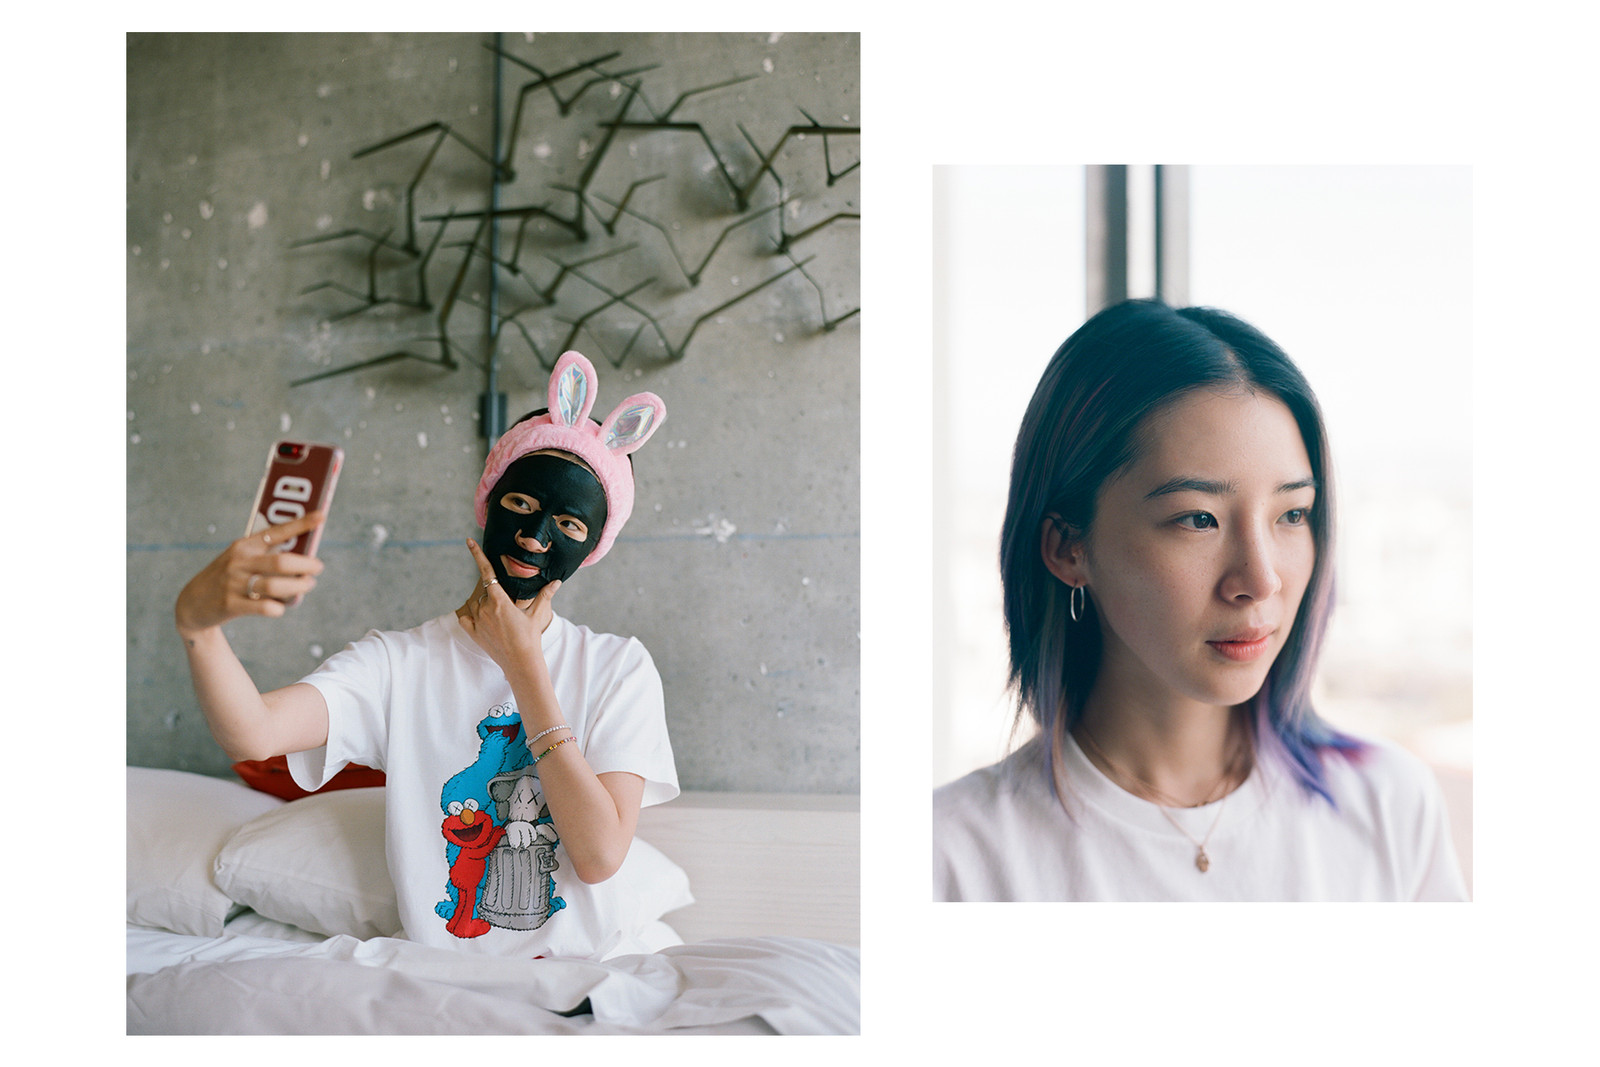 Irene Kim Skincare Jade Rollers Pink Rabbit Headband Korean Beauty K-Beauty Influencer It-girl Model Style Fashion